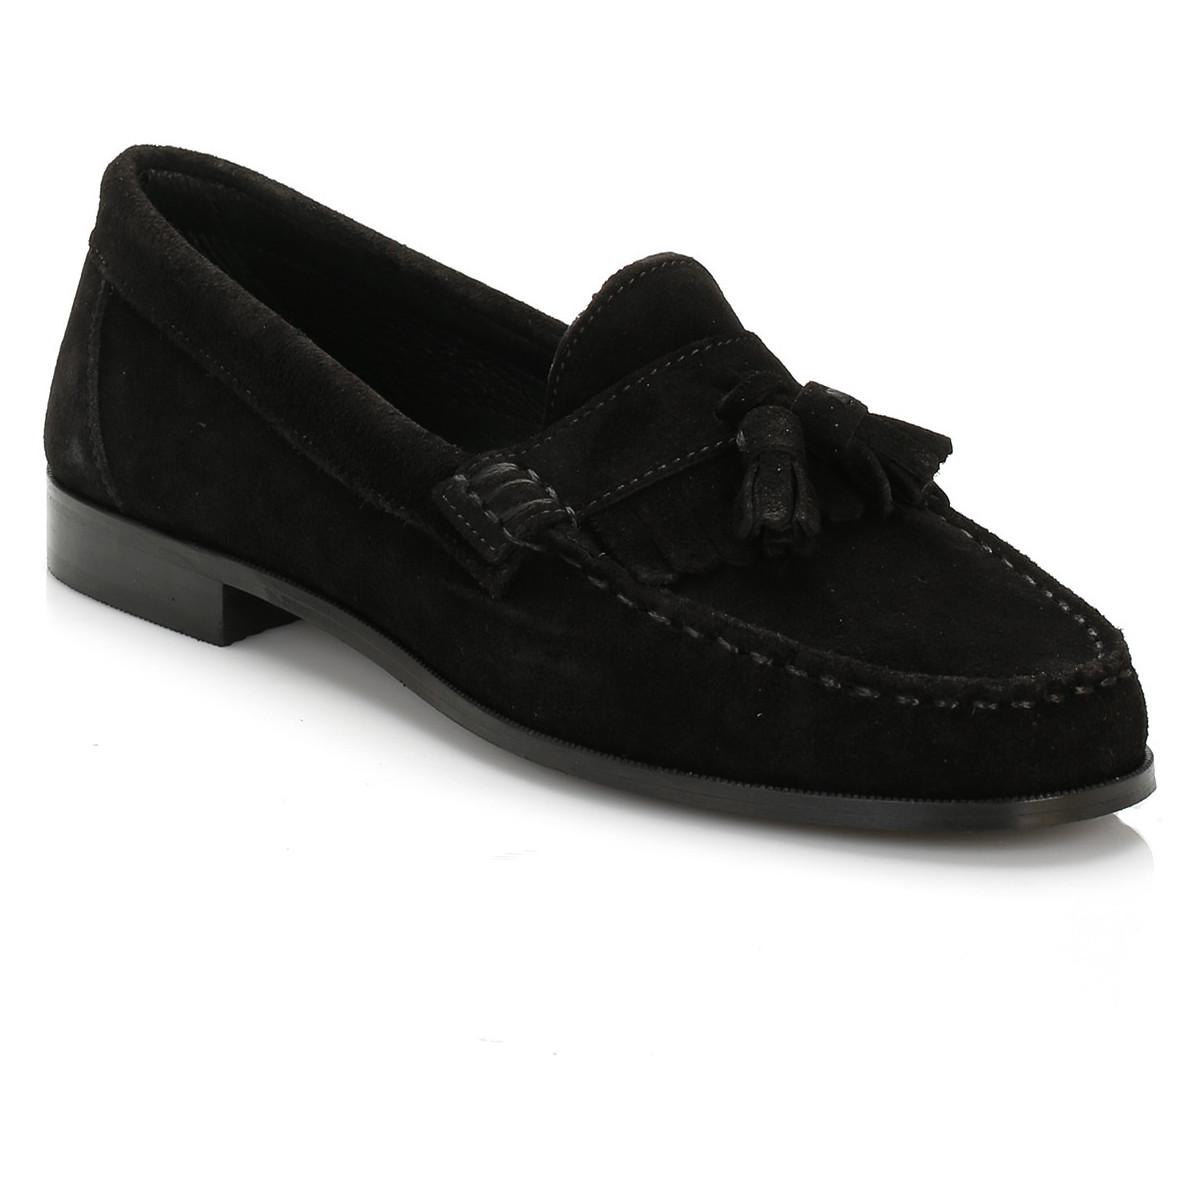 a1537e3e730 TOWER London Womens Black Suede Tassel Loafers Women s Loafers ...